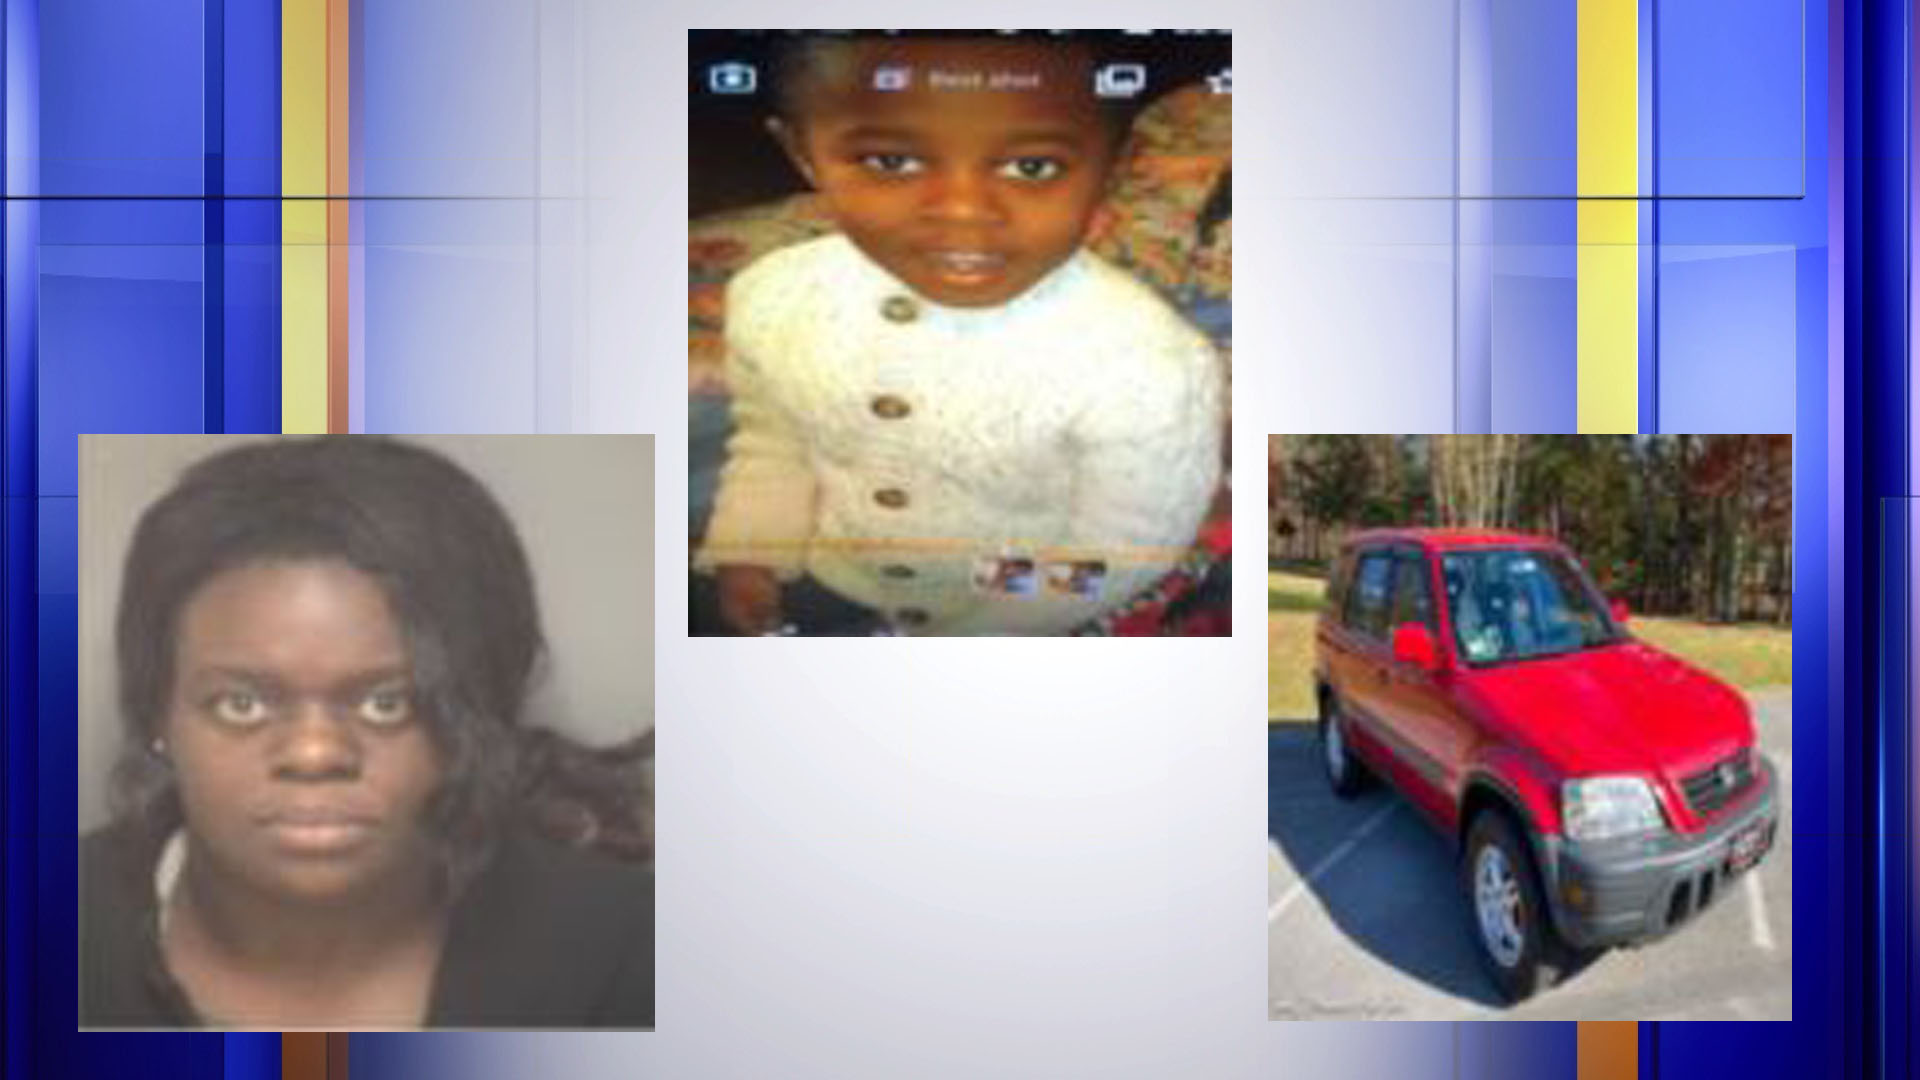 Police are searching for five-year-old Bricen Kent Mwanawabene, who was last seen in Charlottesville. Authorities believe the boy was abducted at 7:30 p.m. on Jan. 17, 2021 by 43-year-old Kerlie Johnson Gage, who may be traveling in a red 1997 Honda CRV with Virginia license UMM-2229. (Photos: Courtesy Virginia State Police)